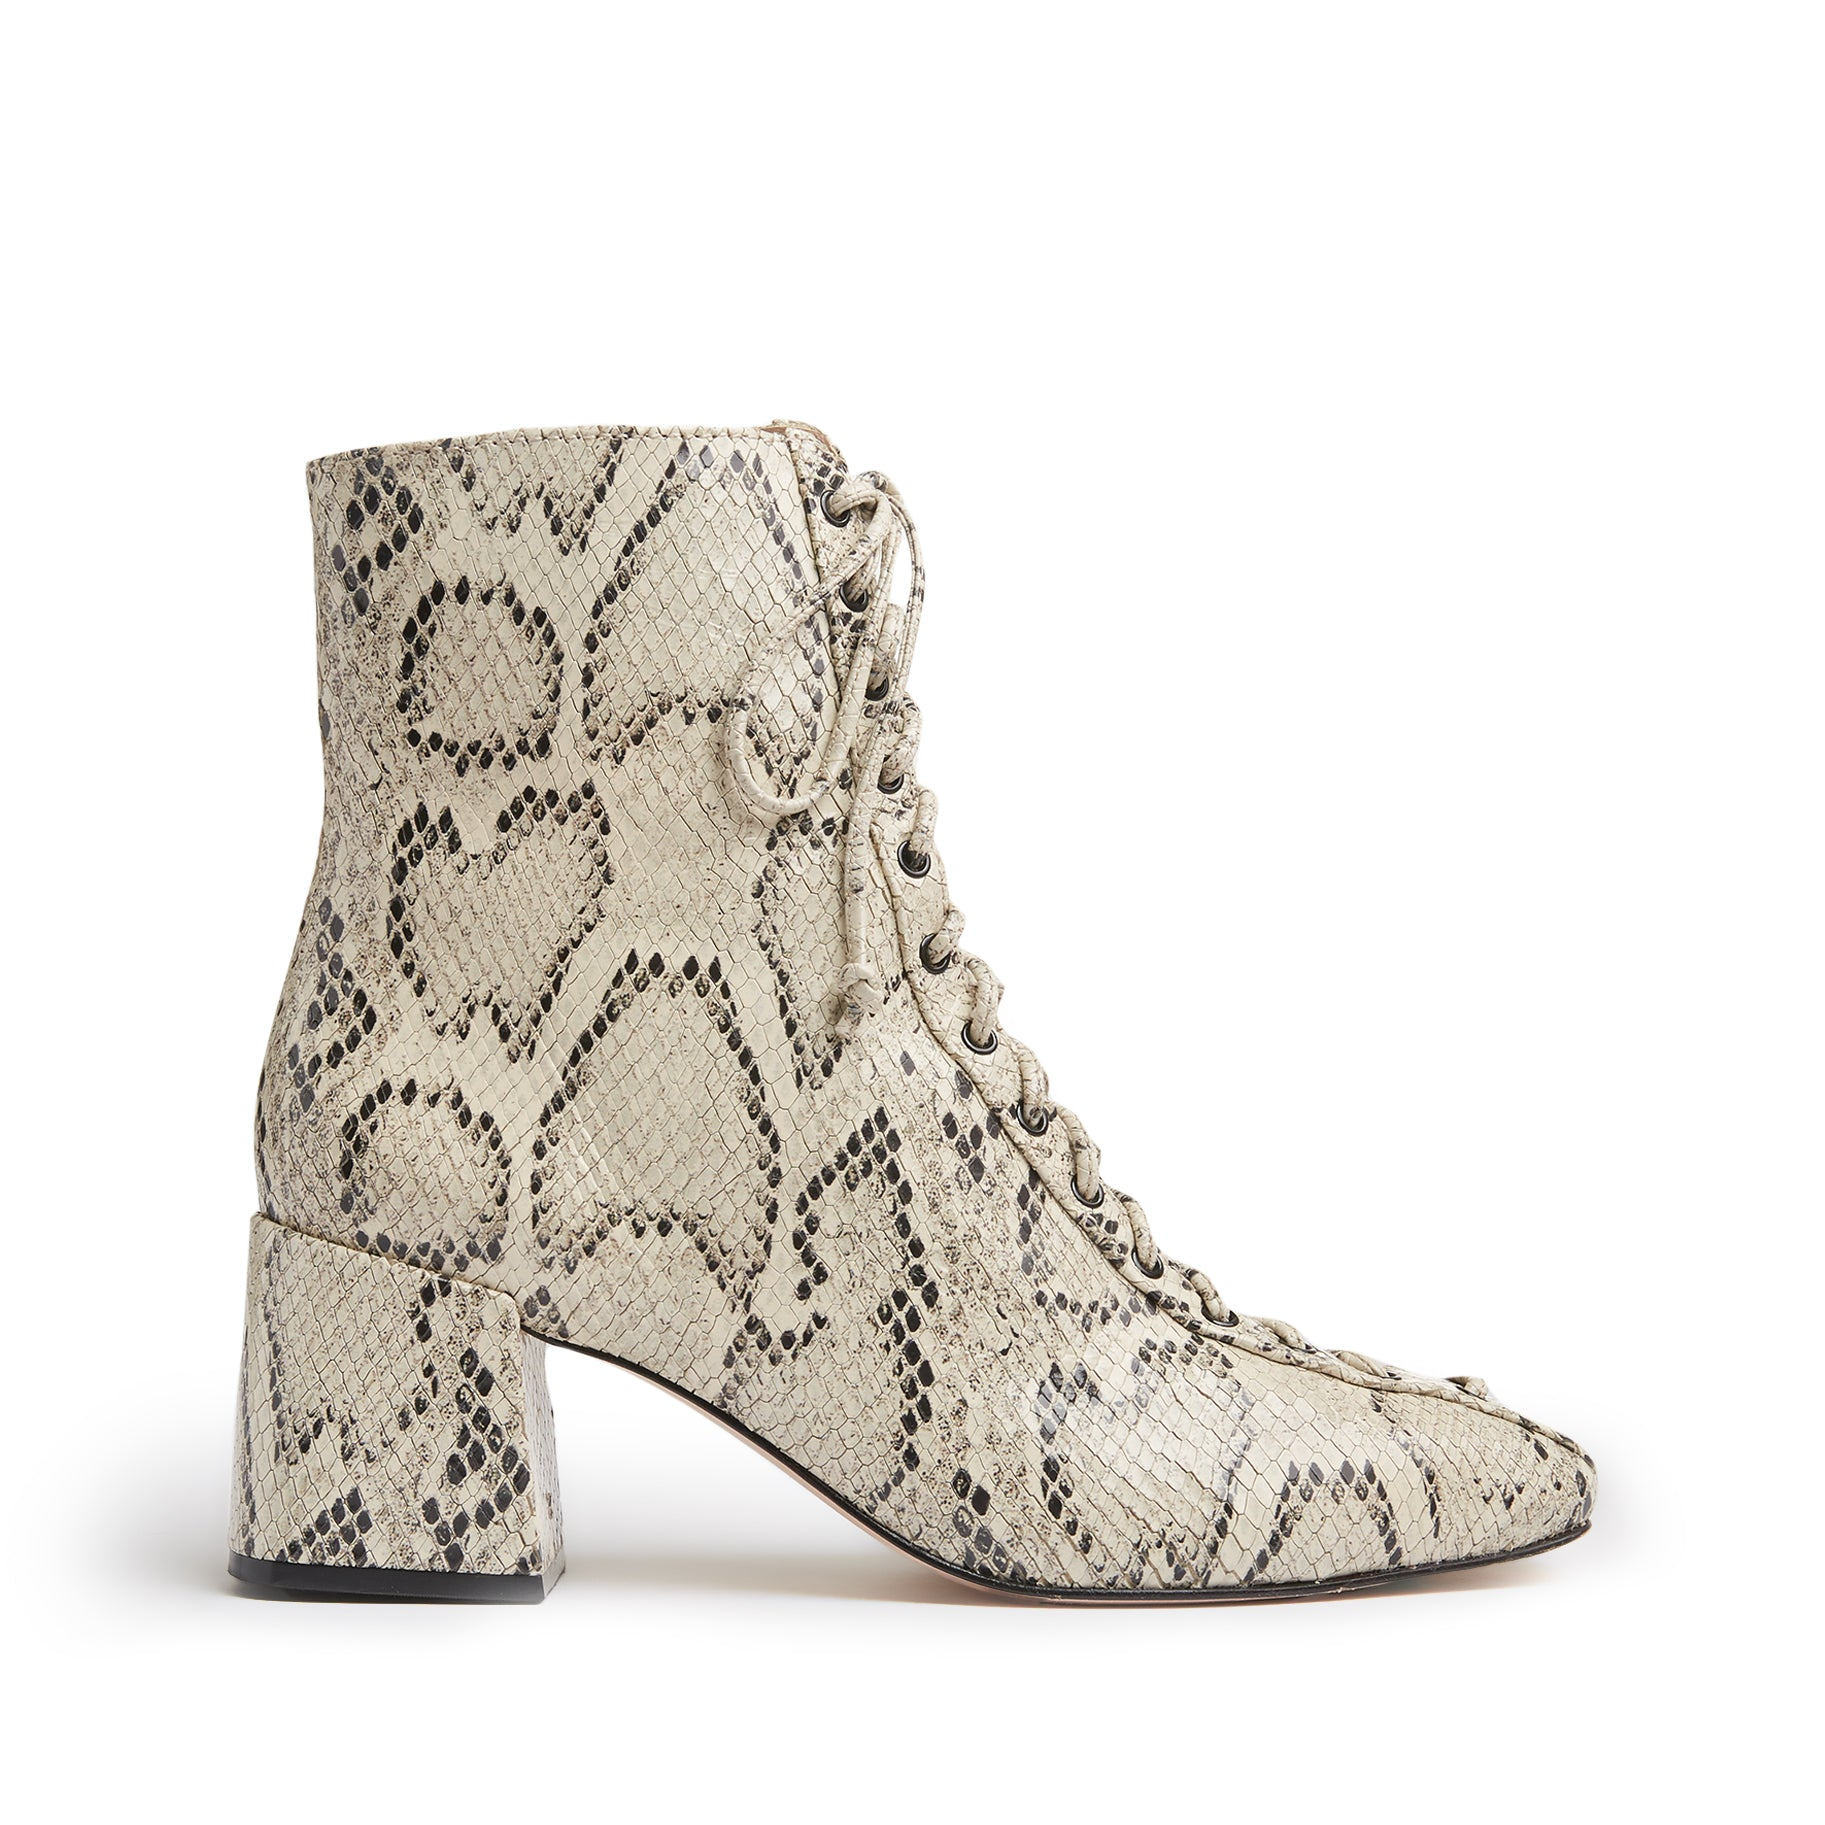 New Kika Booties Natural Snake Snake Embossed Leather